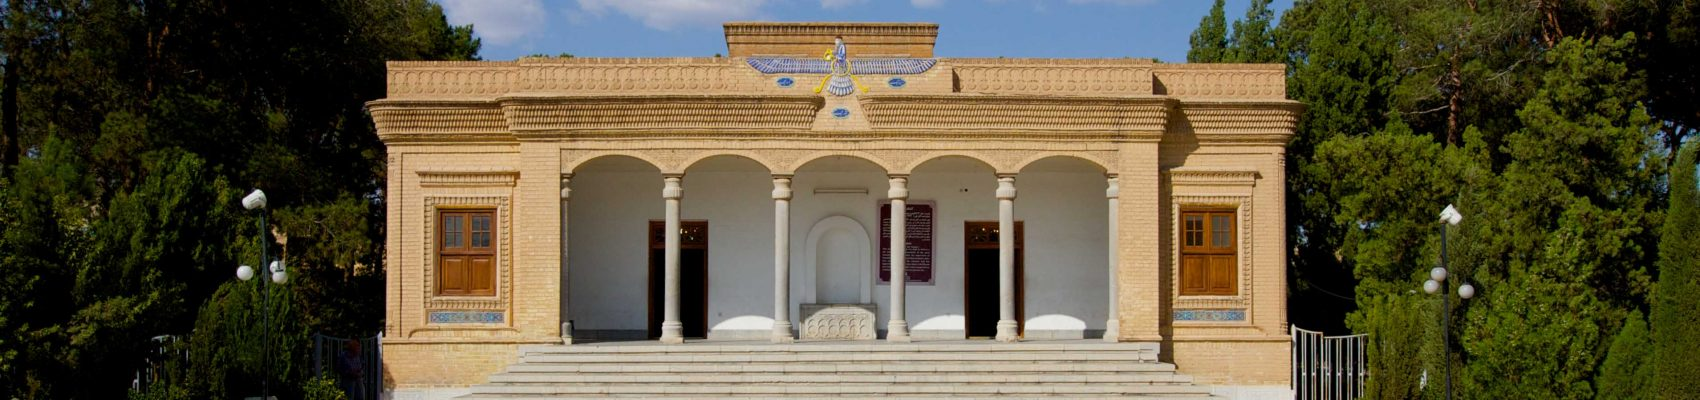 Zoroastrian_fire_temple_in_Yazd